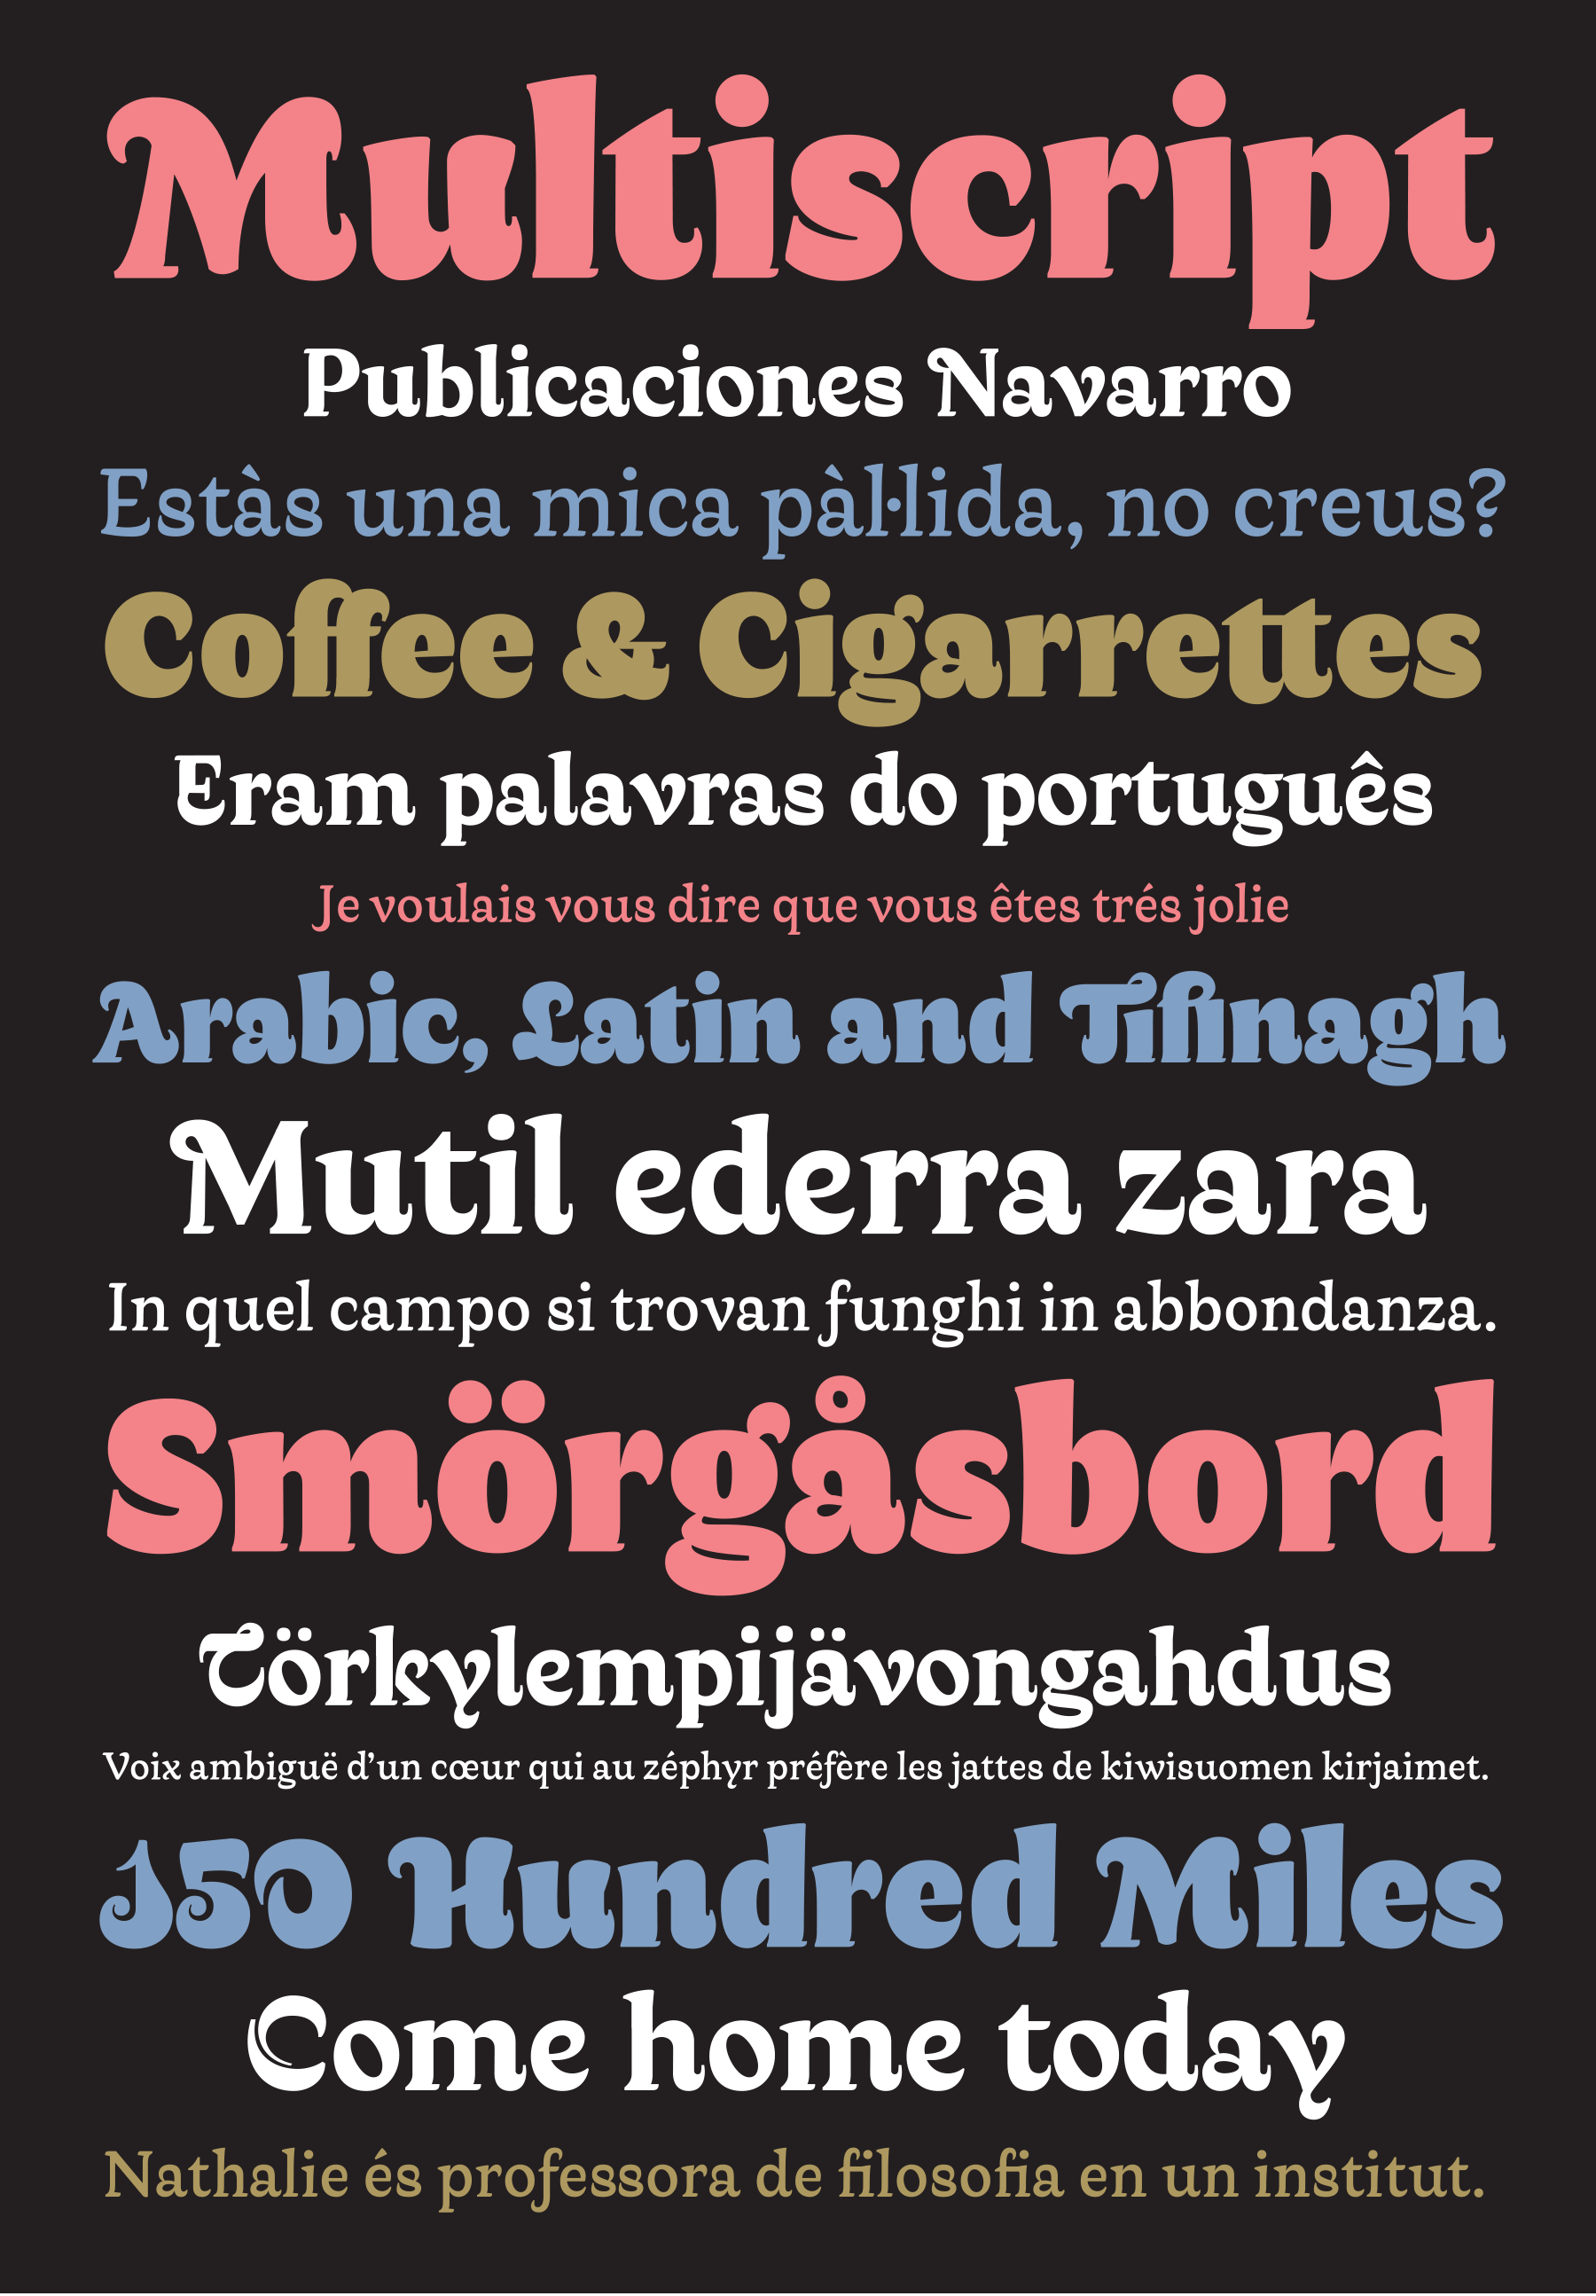 Retail type design: Qandus, a multi-script type project. Latin by Laura Meseguer